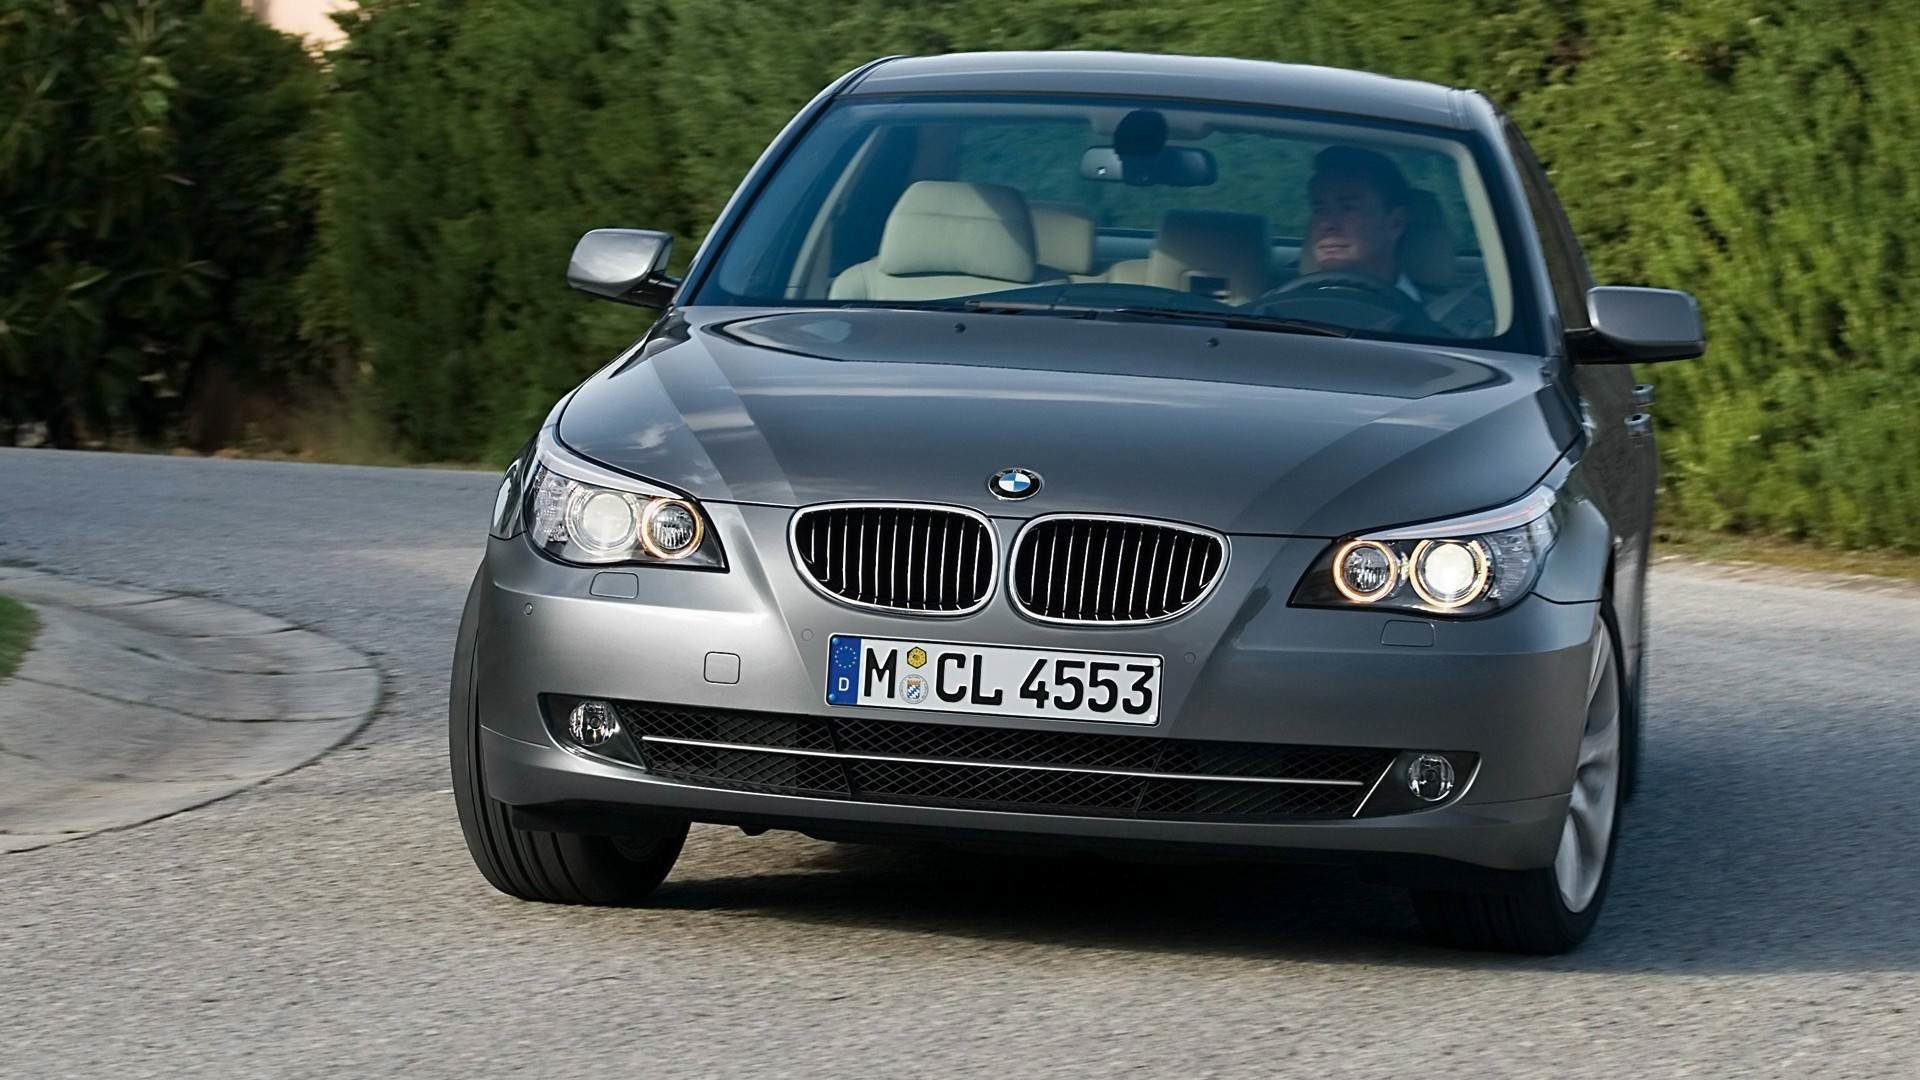 Latest Wallpaper Bmw Cars Hd Wallpapers Free Download